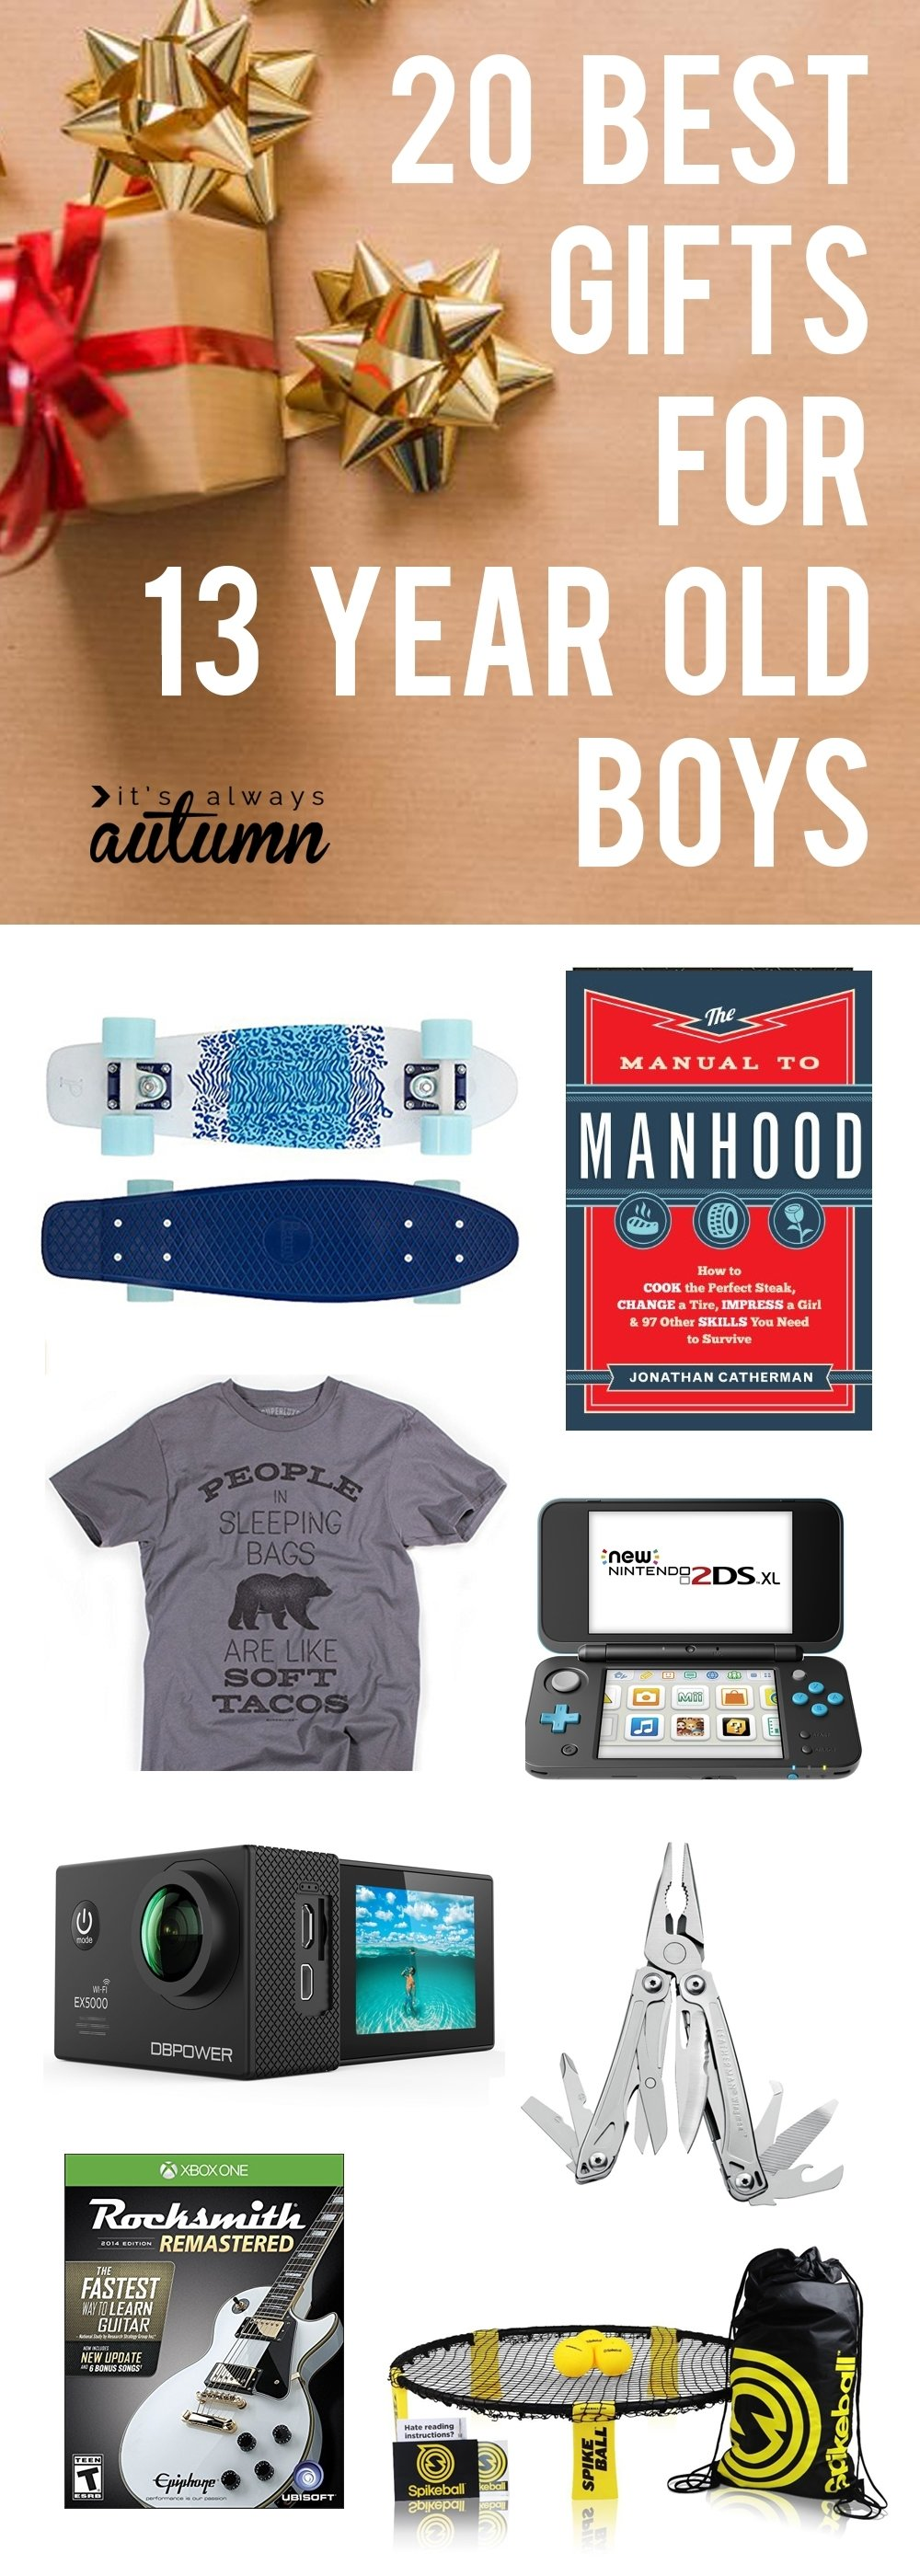 10 Nice Gift Ideas For 15 Year Old Boys best christmas gifts for 13 year old boys its always autumn 20